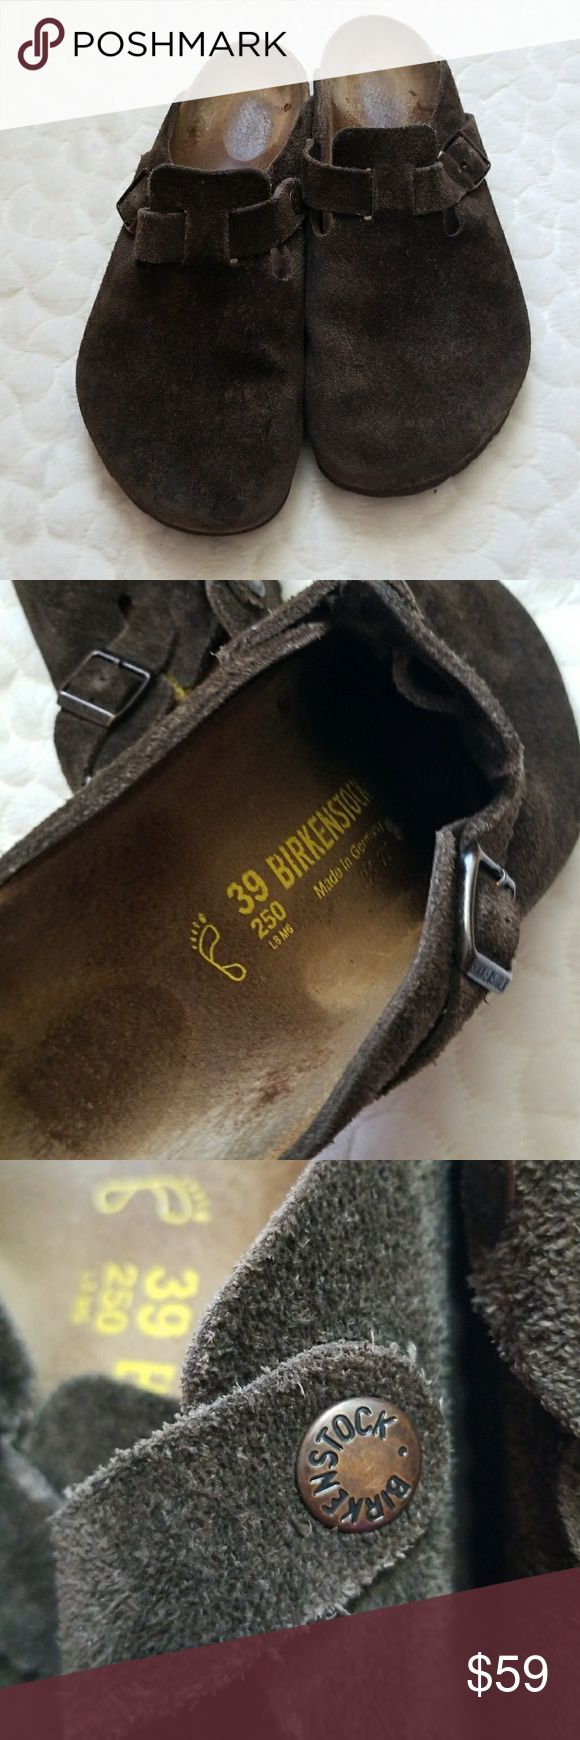 Birkenstocks slip on mules clogs brown leather 9 ******Birkenstock size 39 which is a woman's 9. Brown leather clog/mule style shoe. Really comfy. Shows signs of wear but still has lots of life left in GUC****** Birkenstock Shoes Mules & Clogs